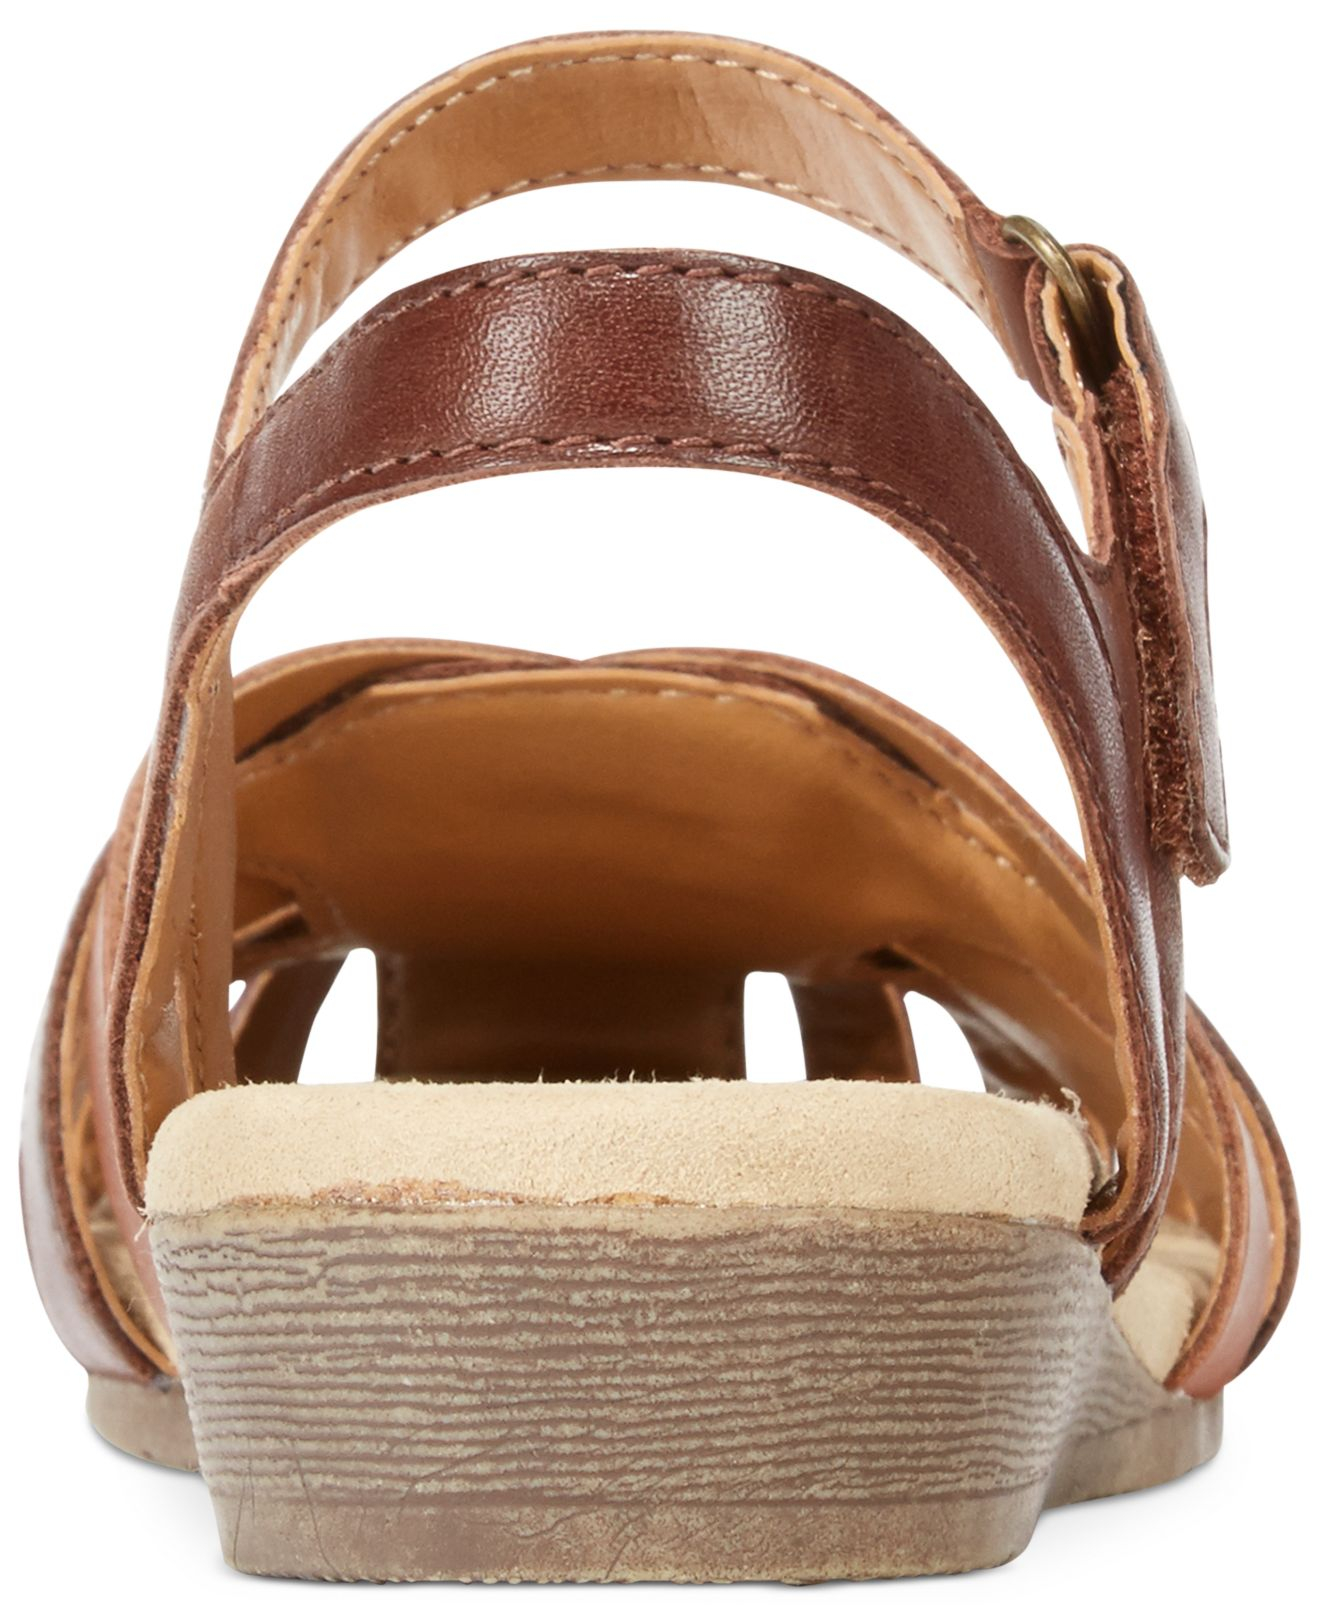 027df5aa1e7 Lyst - Clarks Collection Women S Jaina Stafford Flat Sandals in Brown